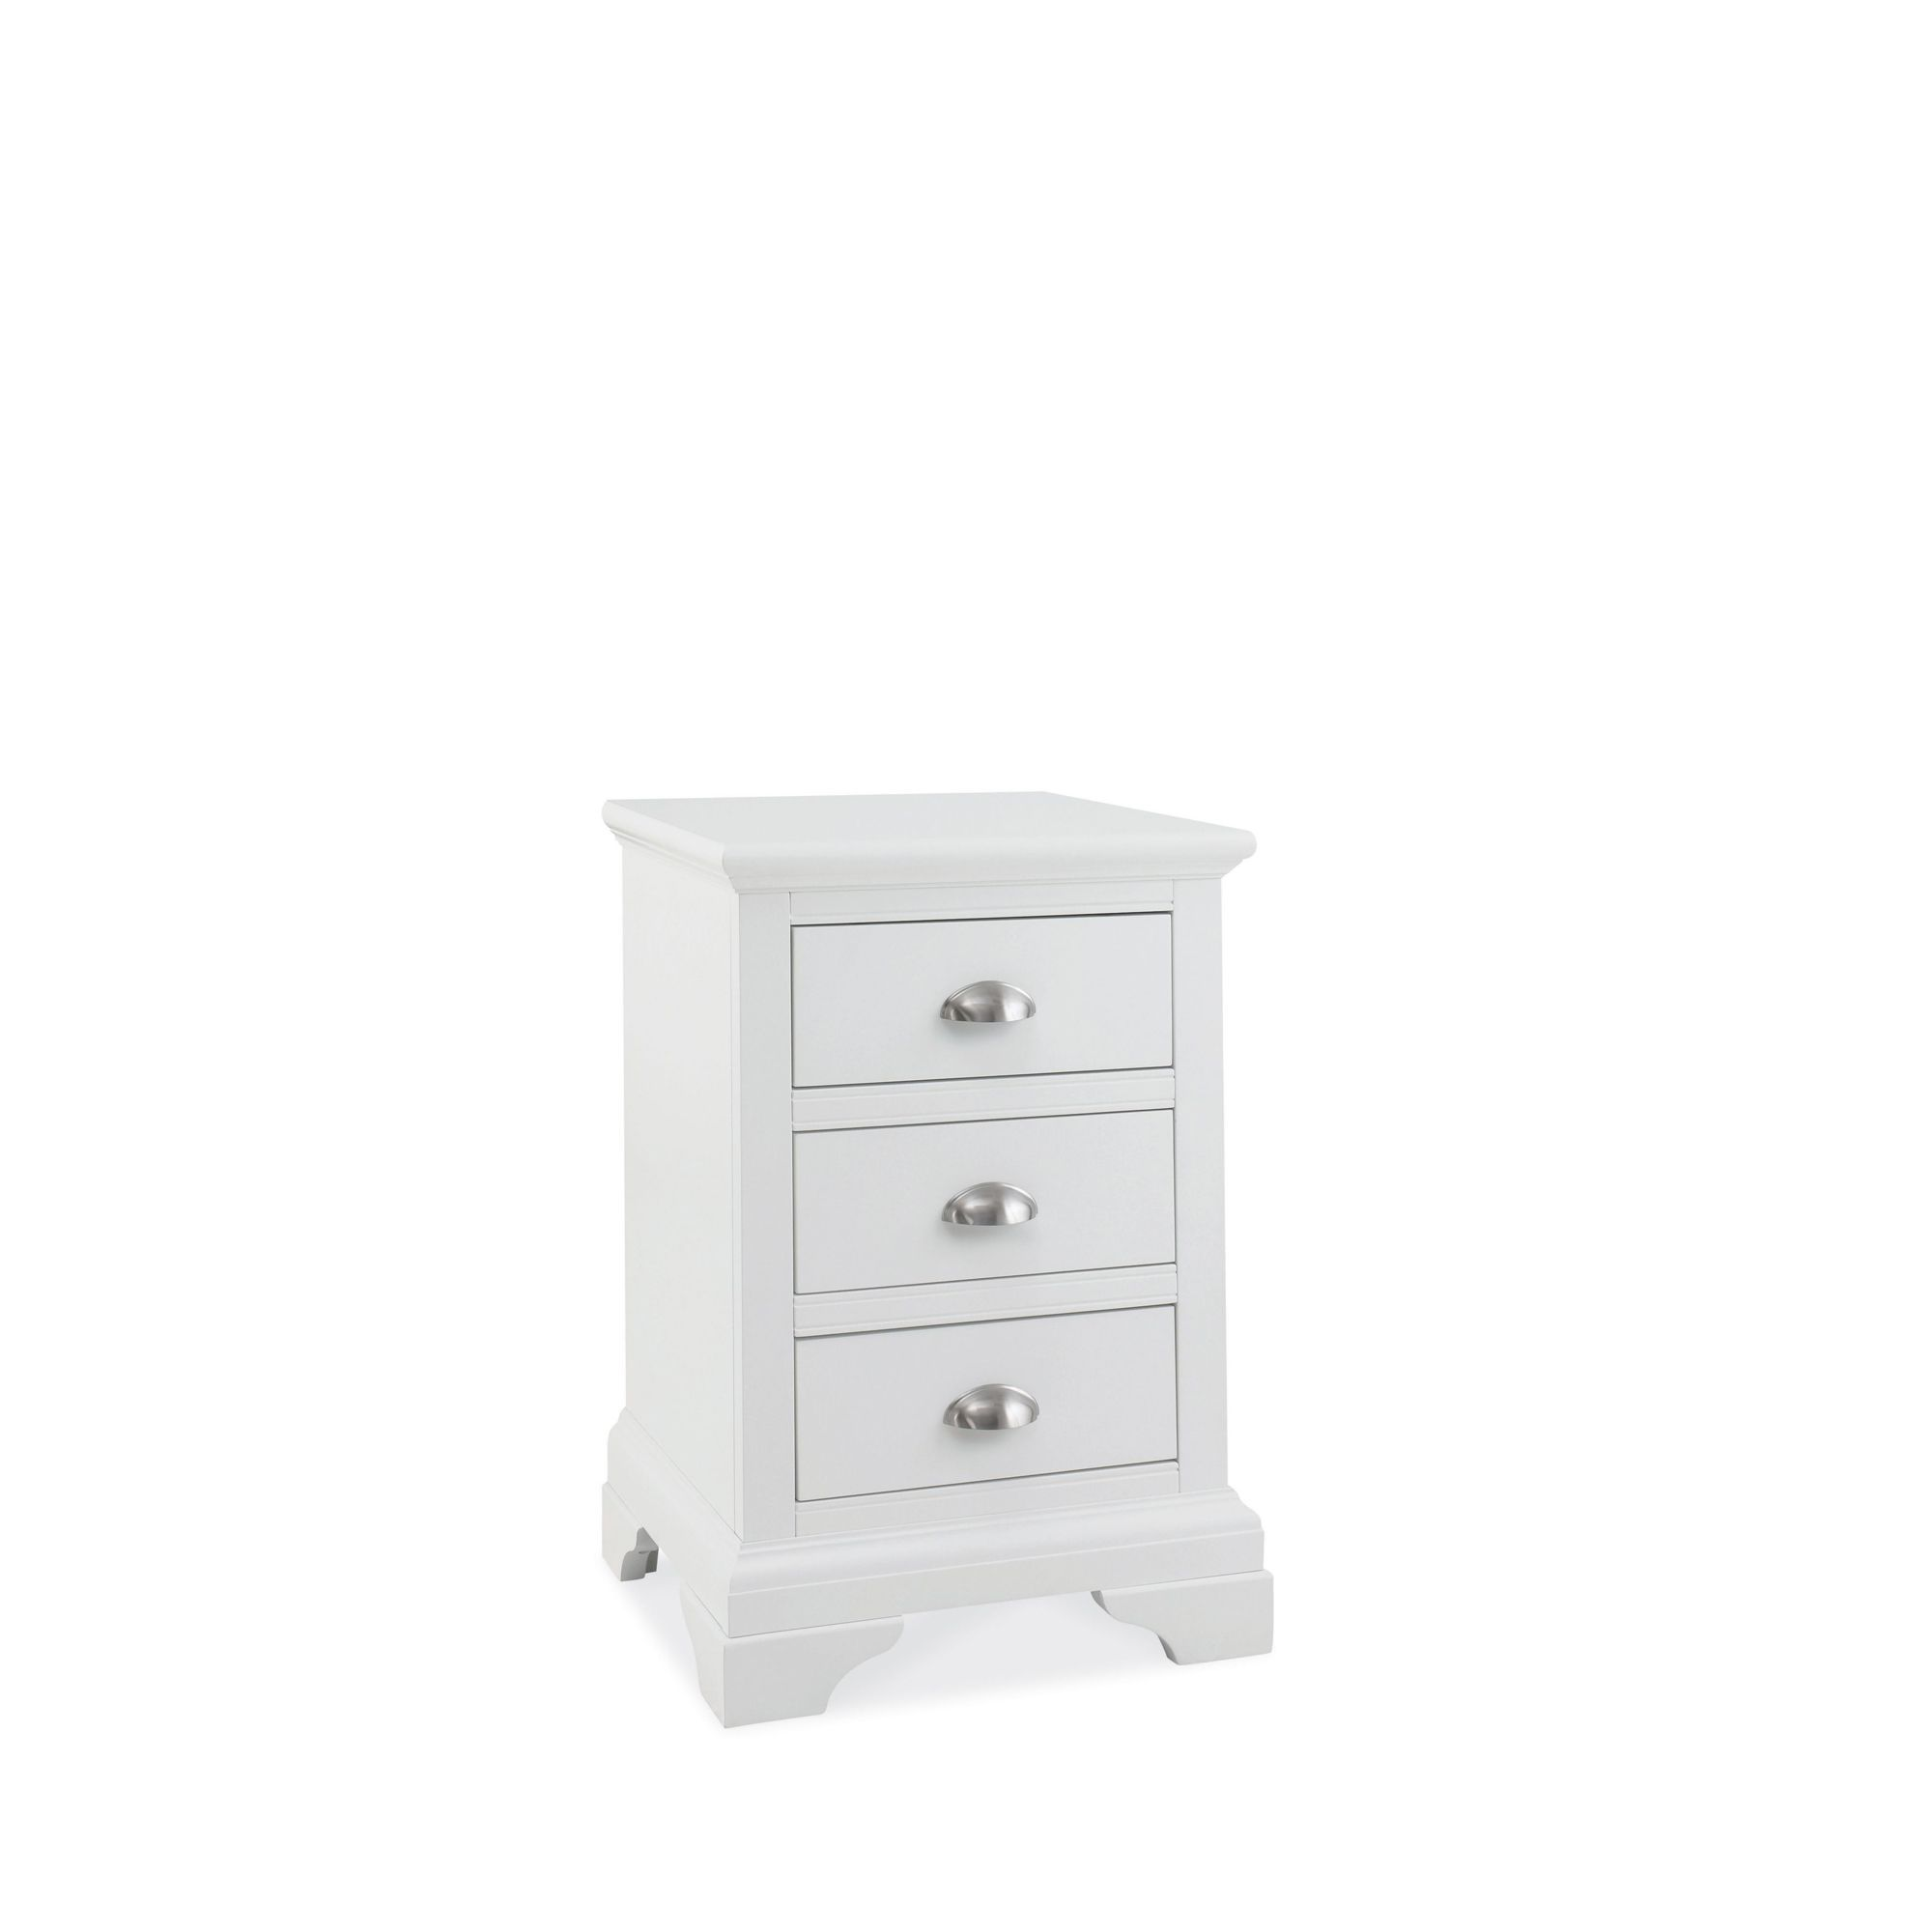 kaplan white pdx furniture nightstand drawer wayfair reviews mirrored